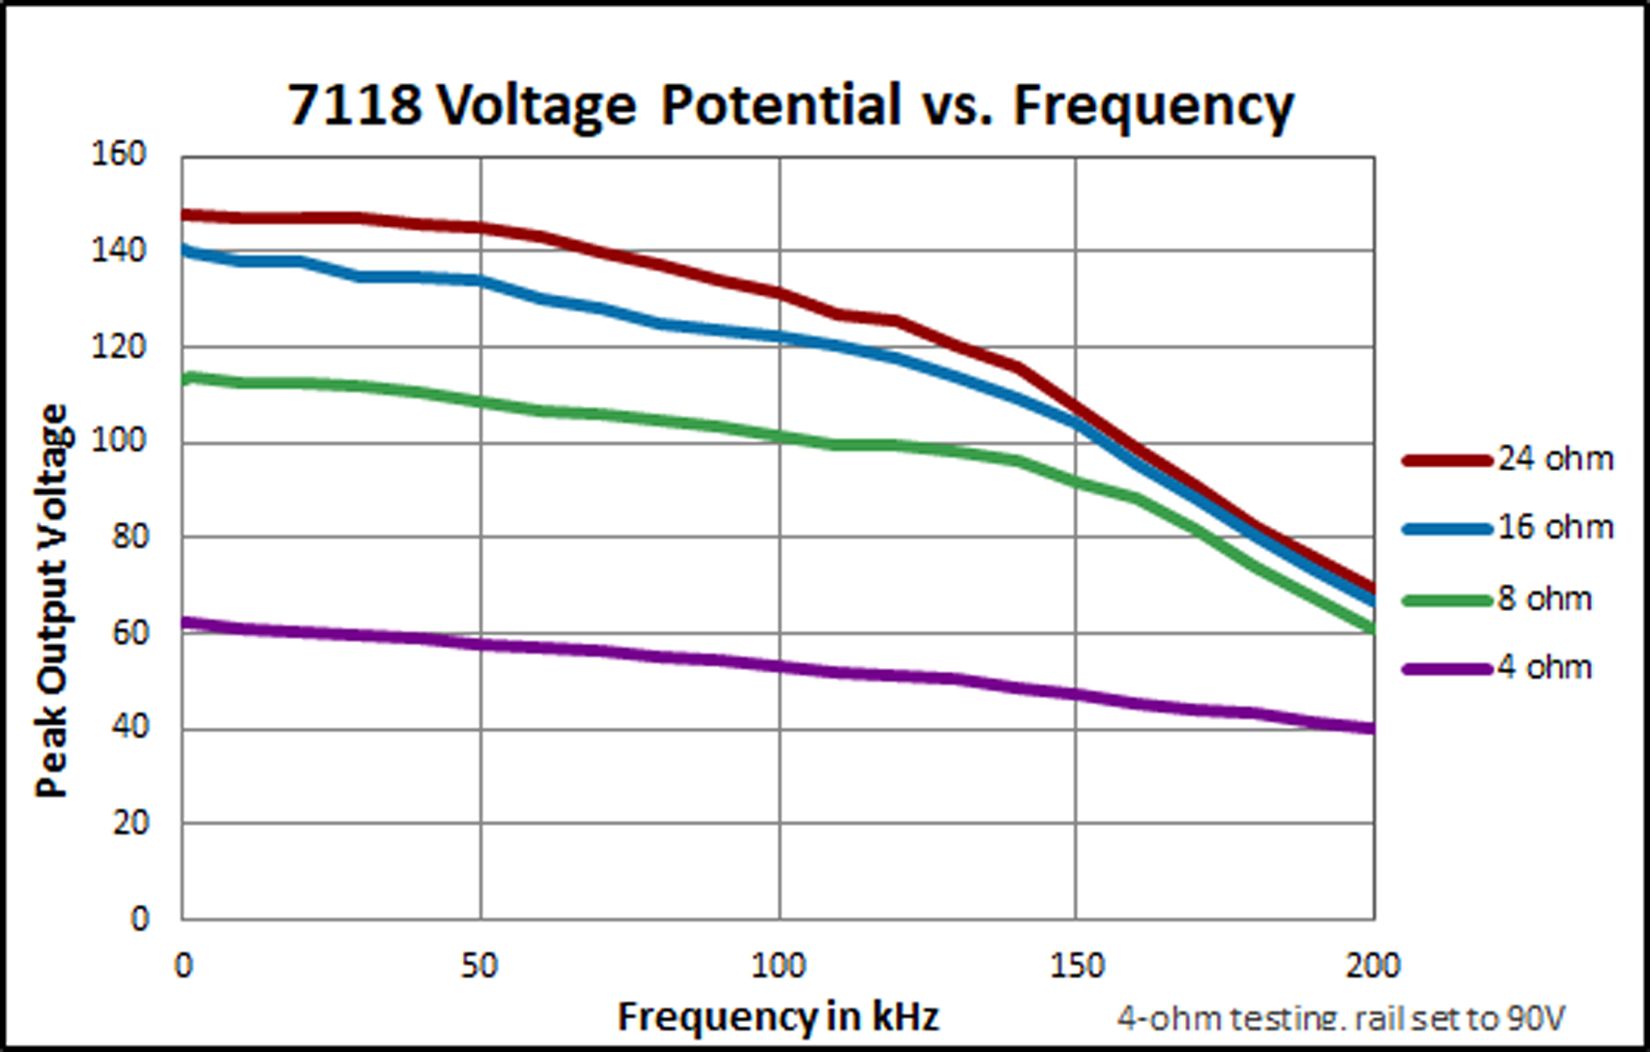 7118 High Speed Ac Dc Amplifier With Precision Supply Coupling And Offset Voltage In Potential Vs Frequency